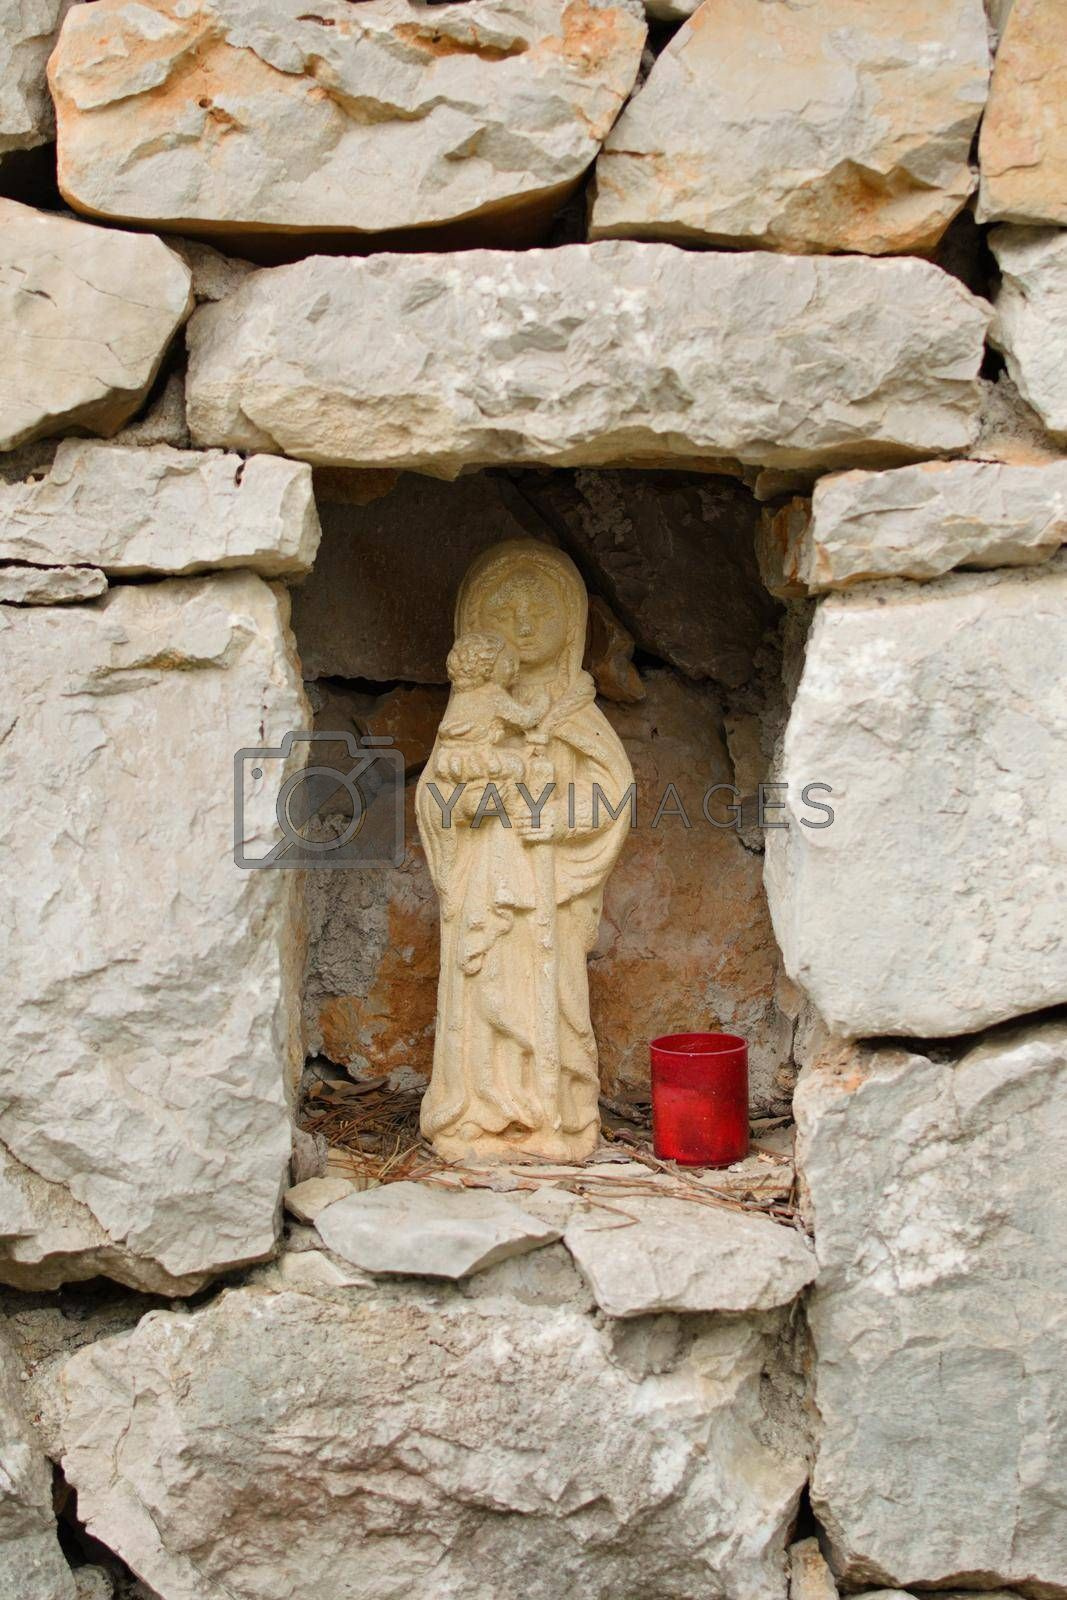 Royalty free image of Small medieval sculpture of Virgin Mary holding a baby Jesus Christ. Early medieval style replica. by hernan_hyper